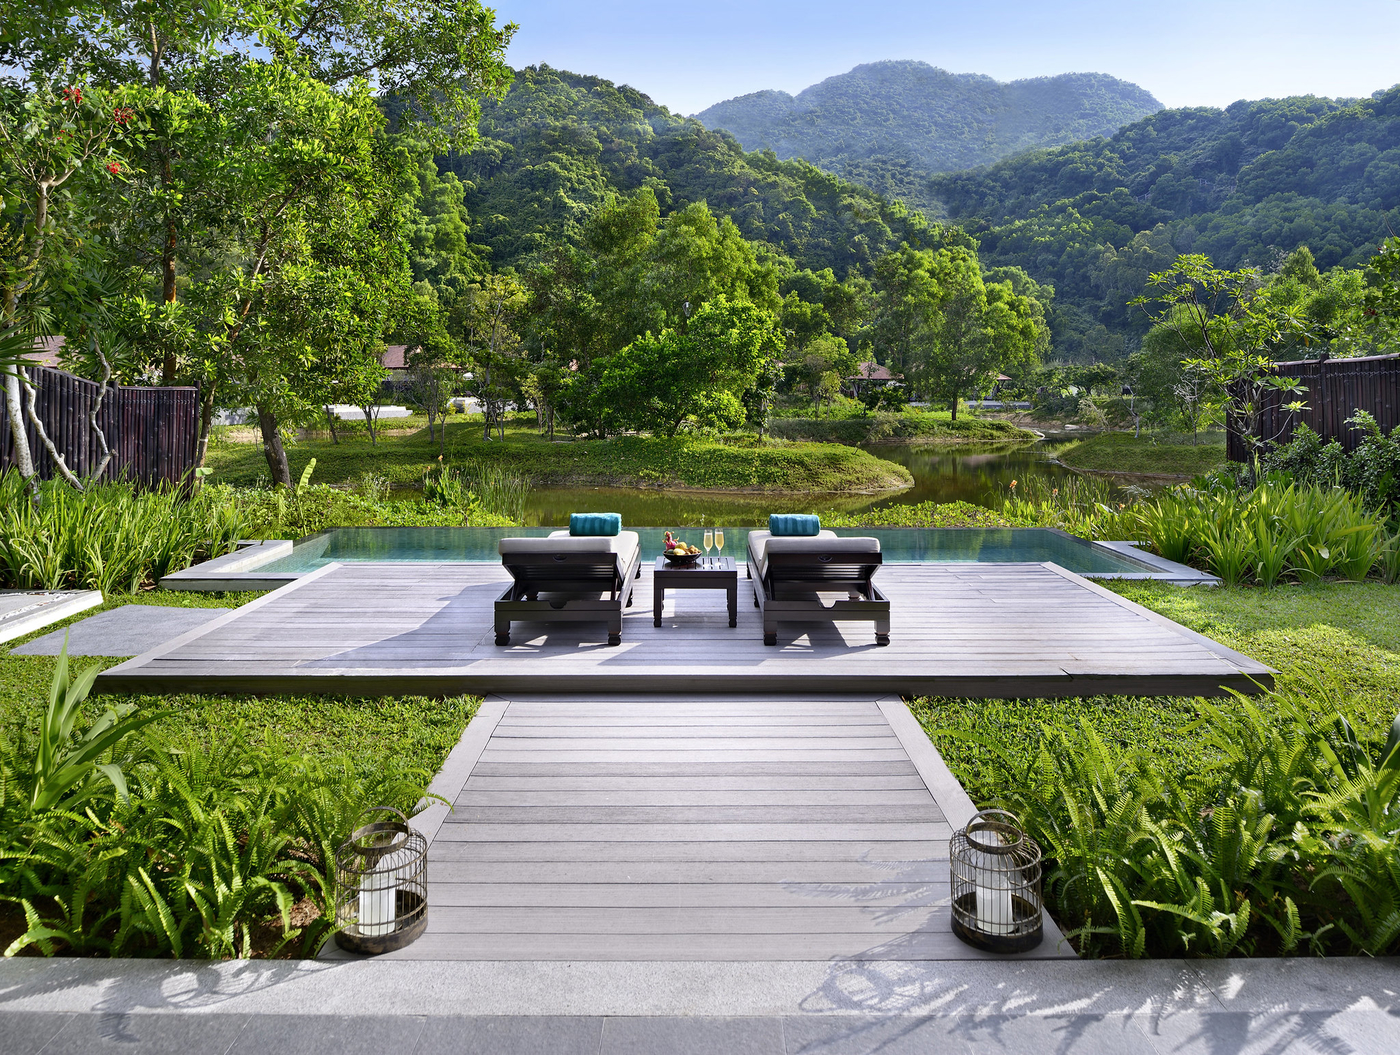 Win a 5-star vacay for you and your bestie at Banyan Tree Lang Co in Vietnam